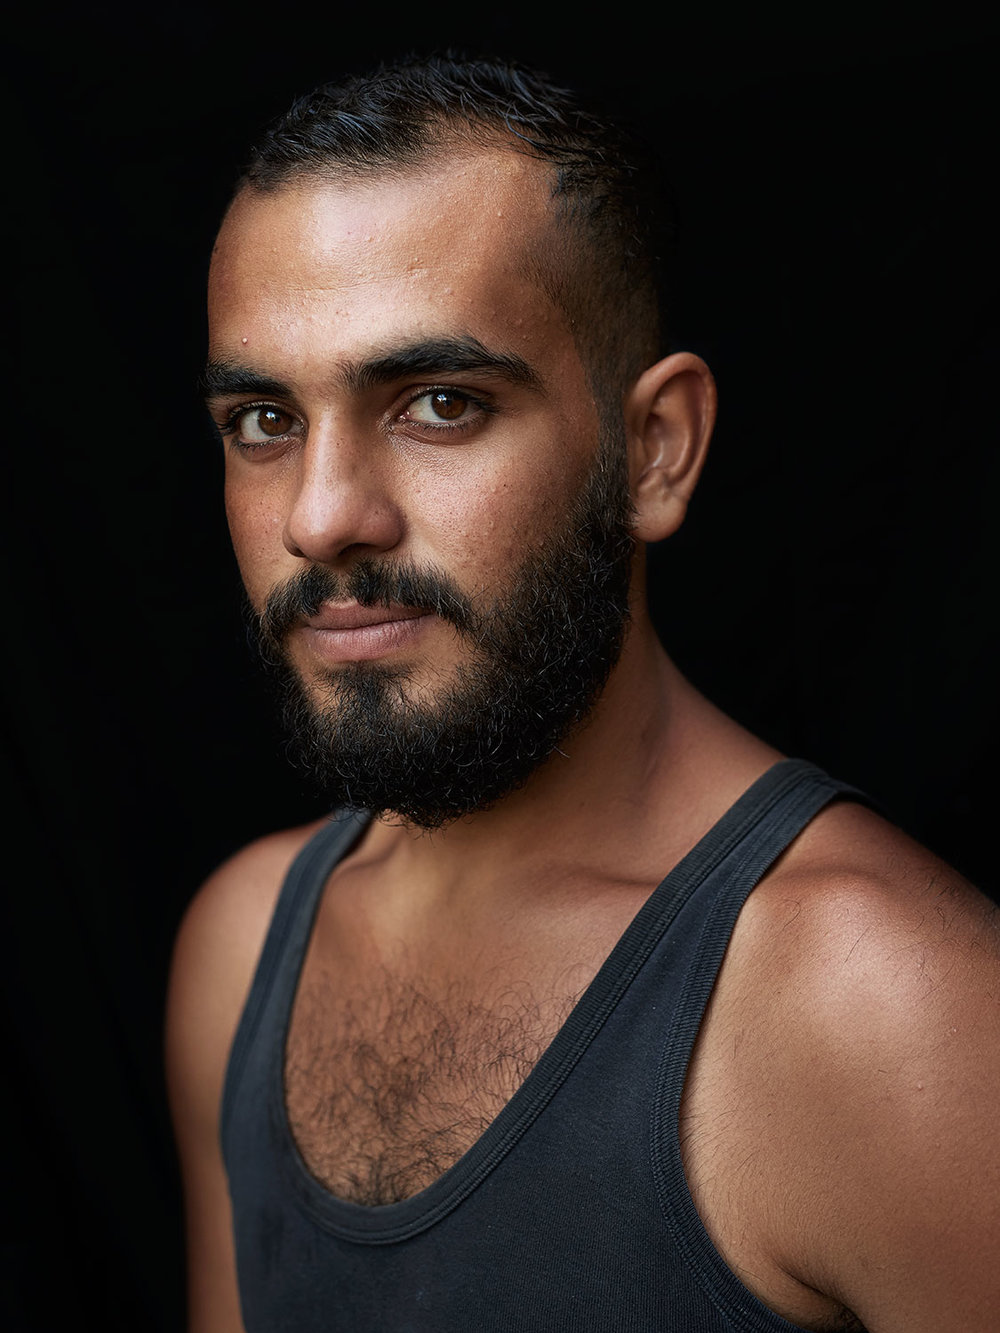 Ahmad /  Syria / Refugee / Was a barber in Syria / Chios, Greece /